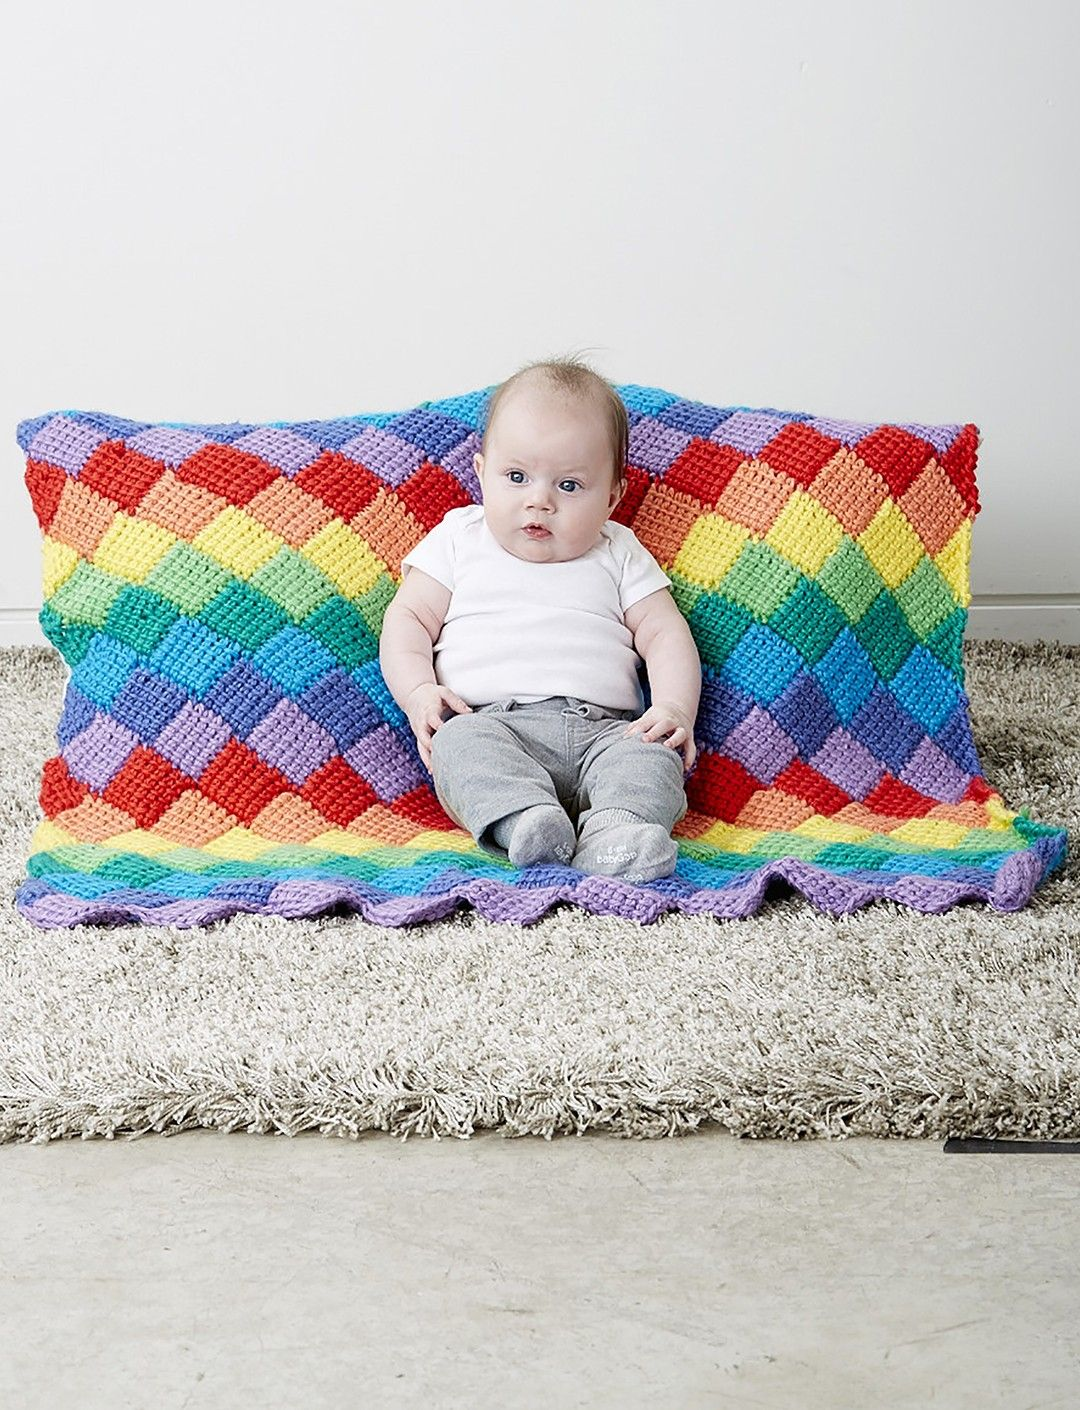 Yarnspirations bernat tunisian entrelac baby blanket test your crochet skills with this amazing rainbow tunisian crochet baby blanket pattern this is probably the coolest rainbow pattern we seen so far bankloansurffo Gallery